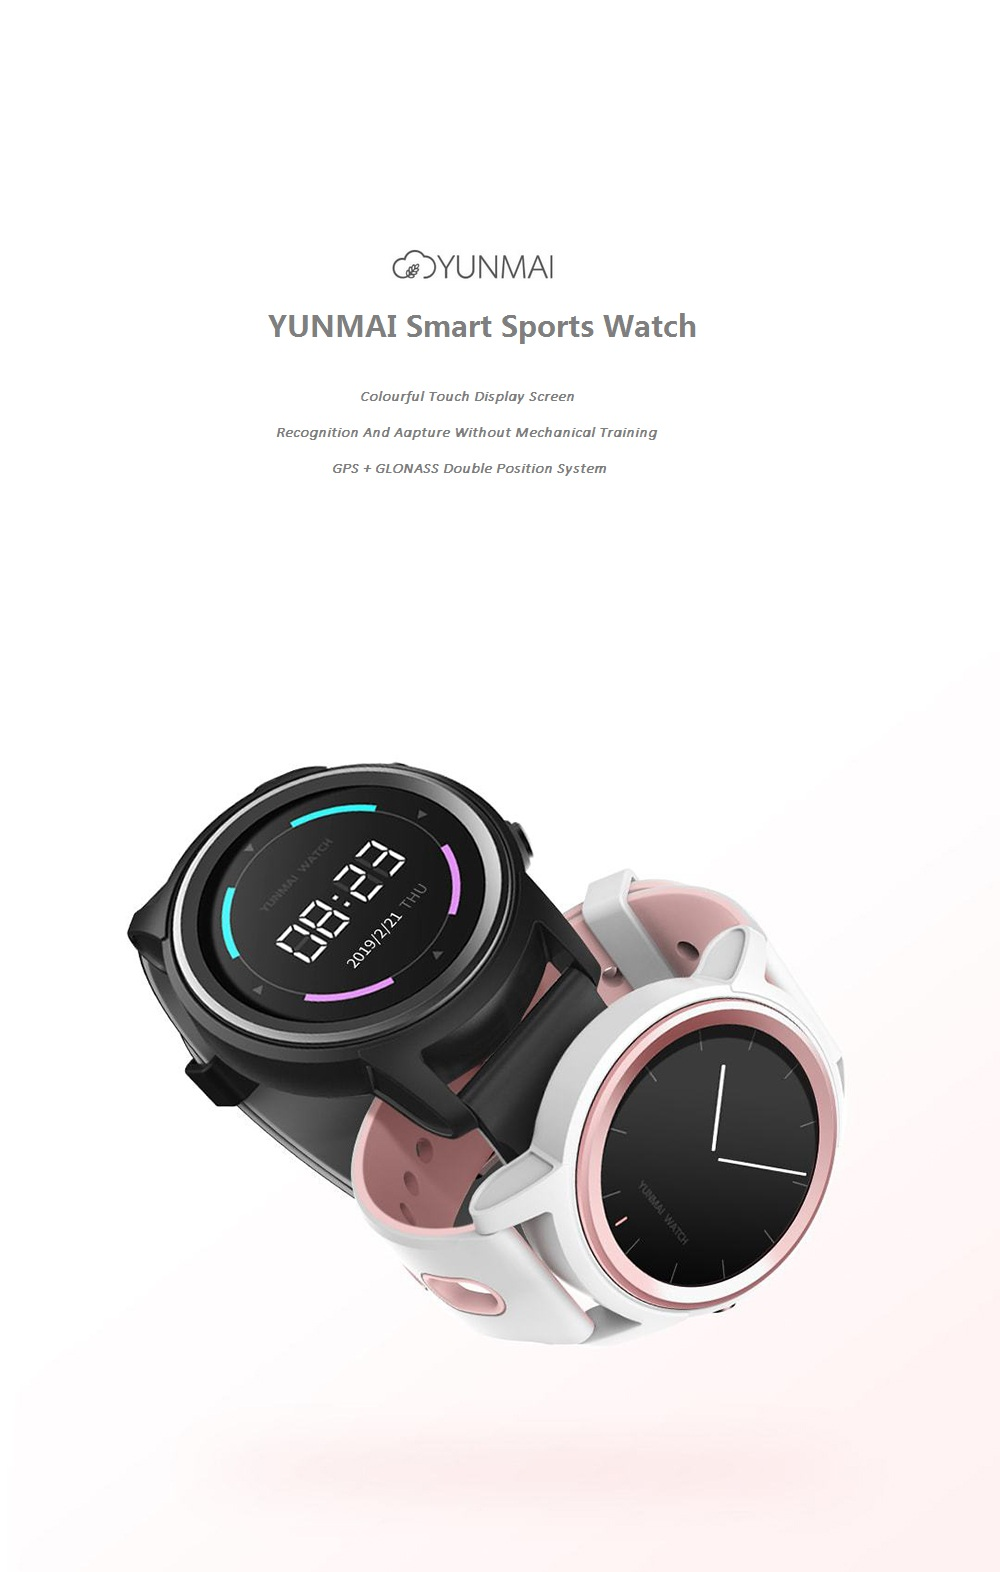 XIAOMI YUNMAI 1.3in AMOLED Touch Screen GPS+GLONASS Positioning IP67 Waterproof Smart Watch Heart Rate Monitor Multiple Sports Modes Anti-lost Fitness Sports Bracelet